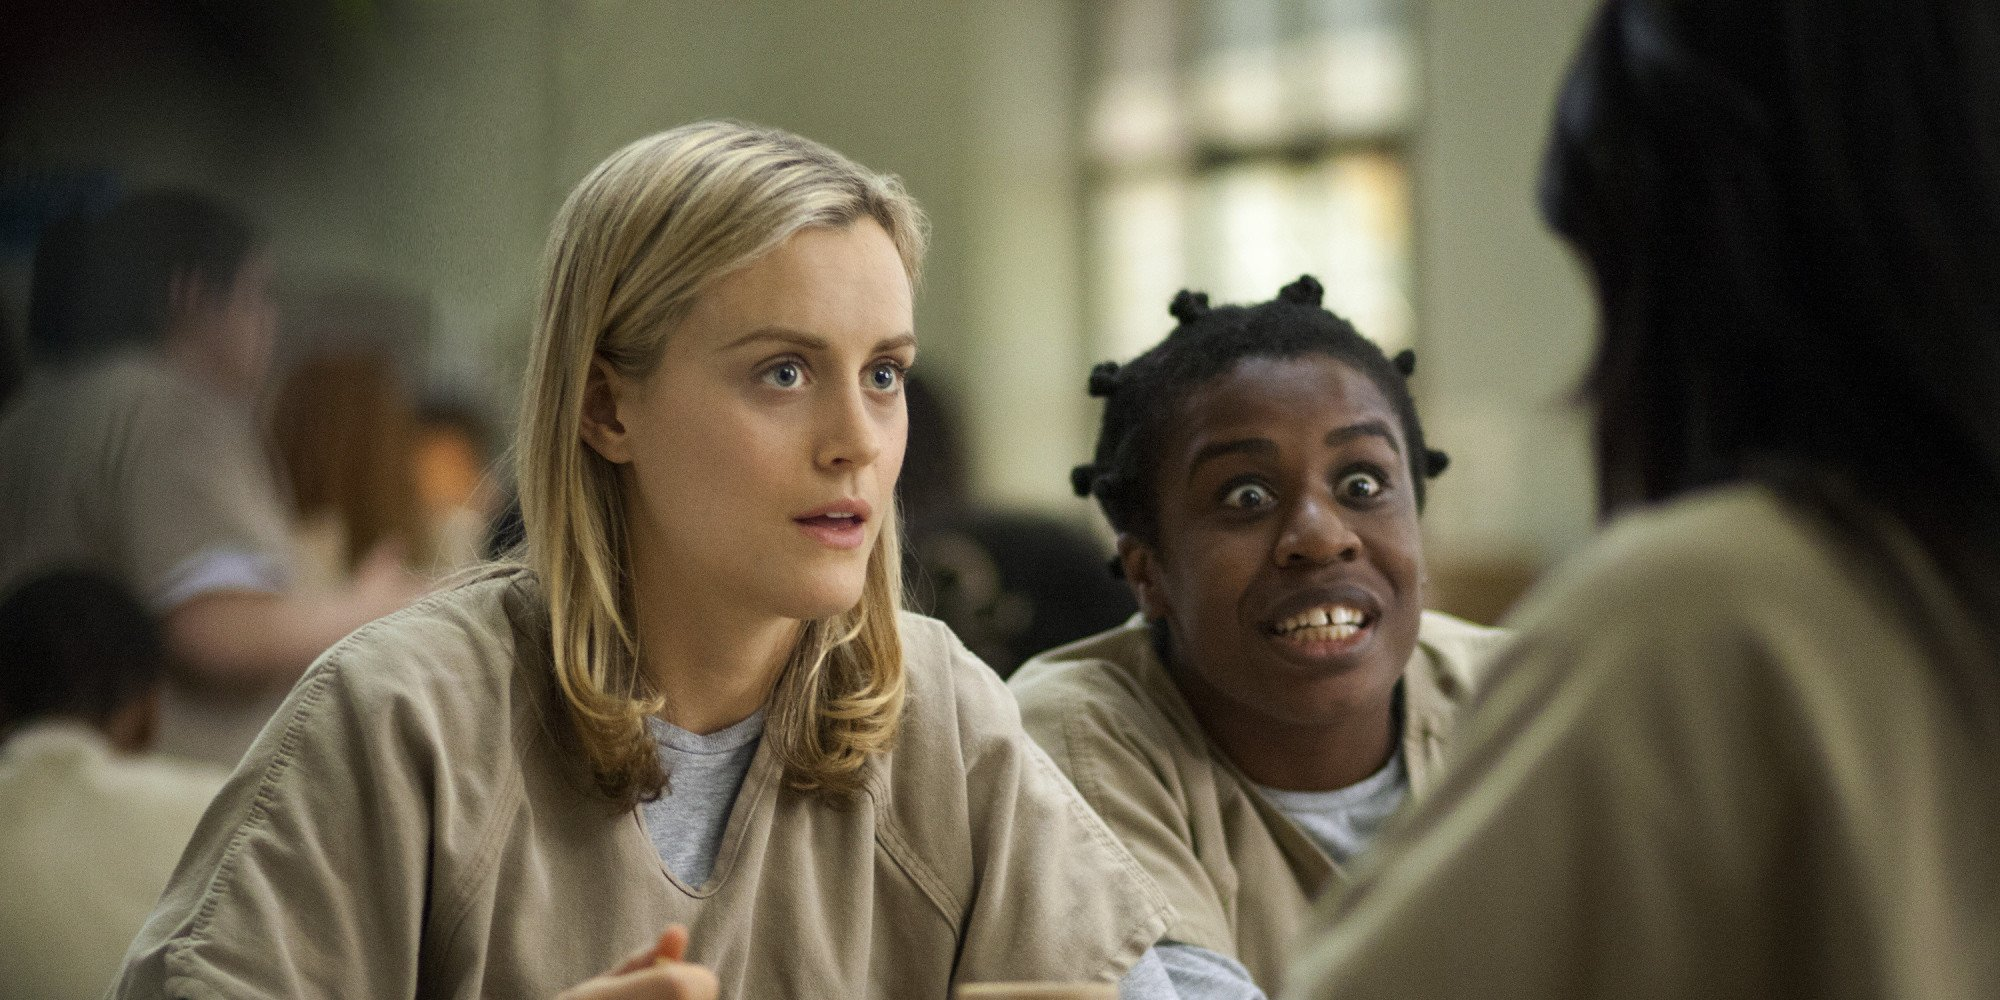 A vida imita a arte? Os presídios femininos na concepção de Orange is the New Black